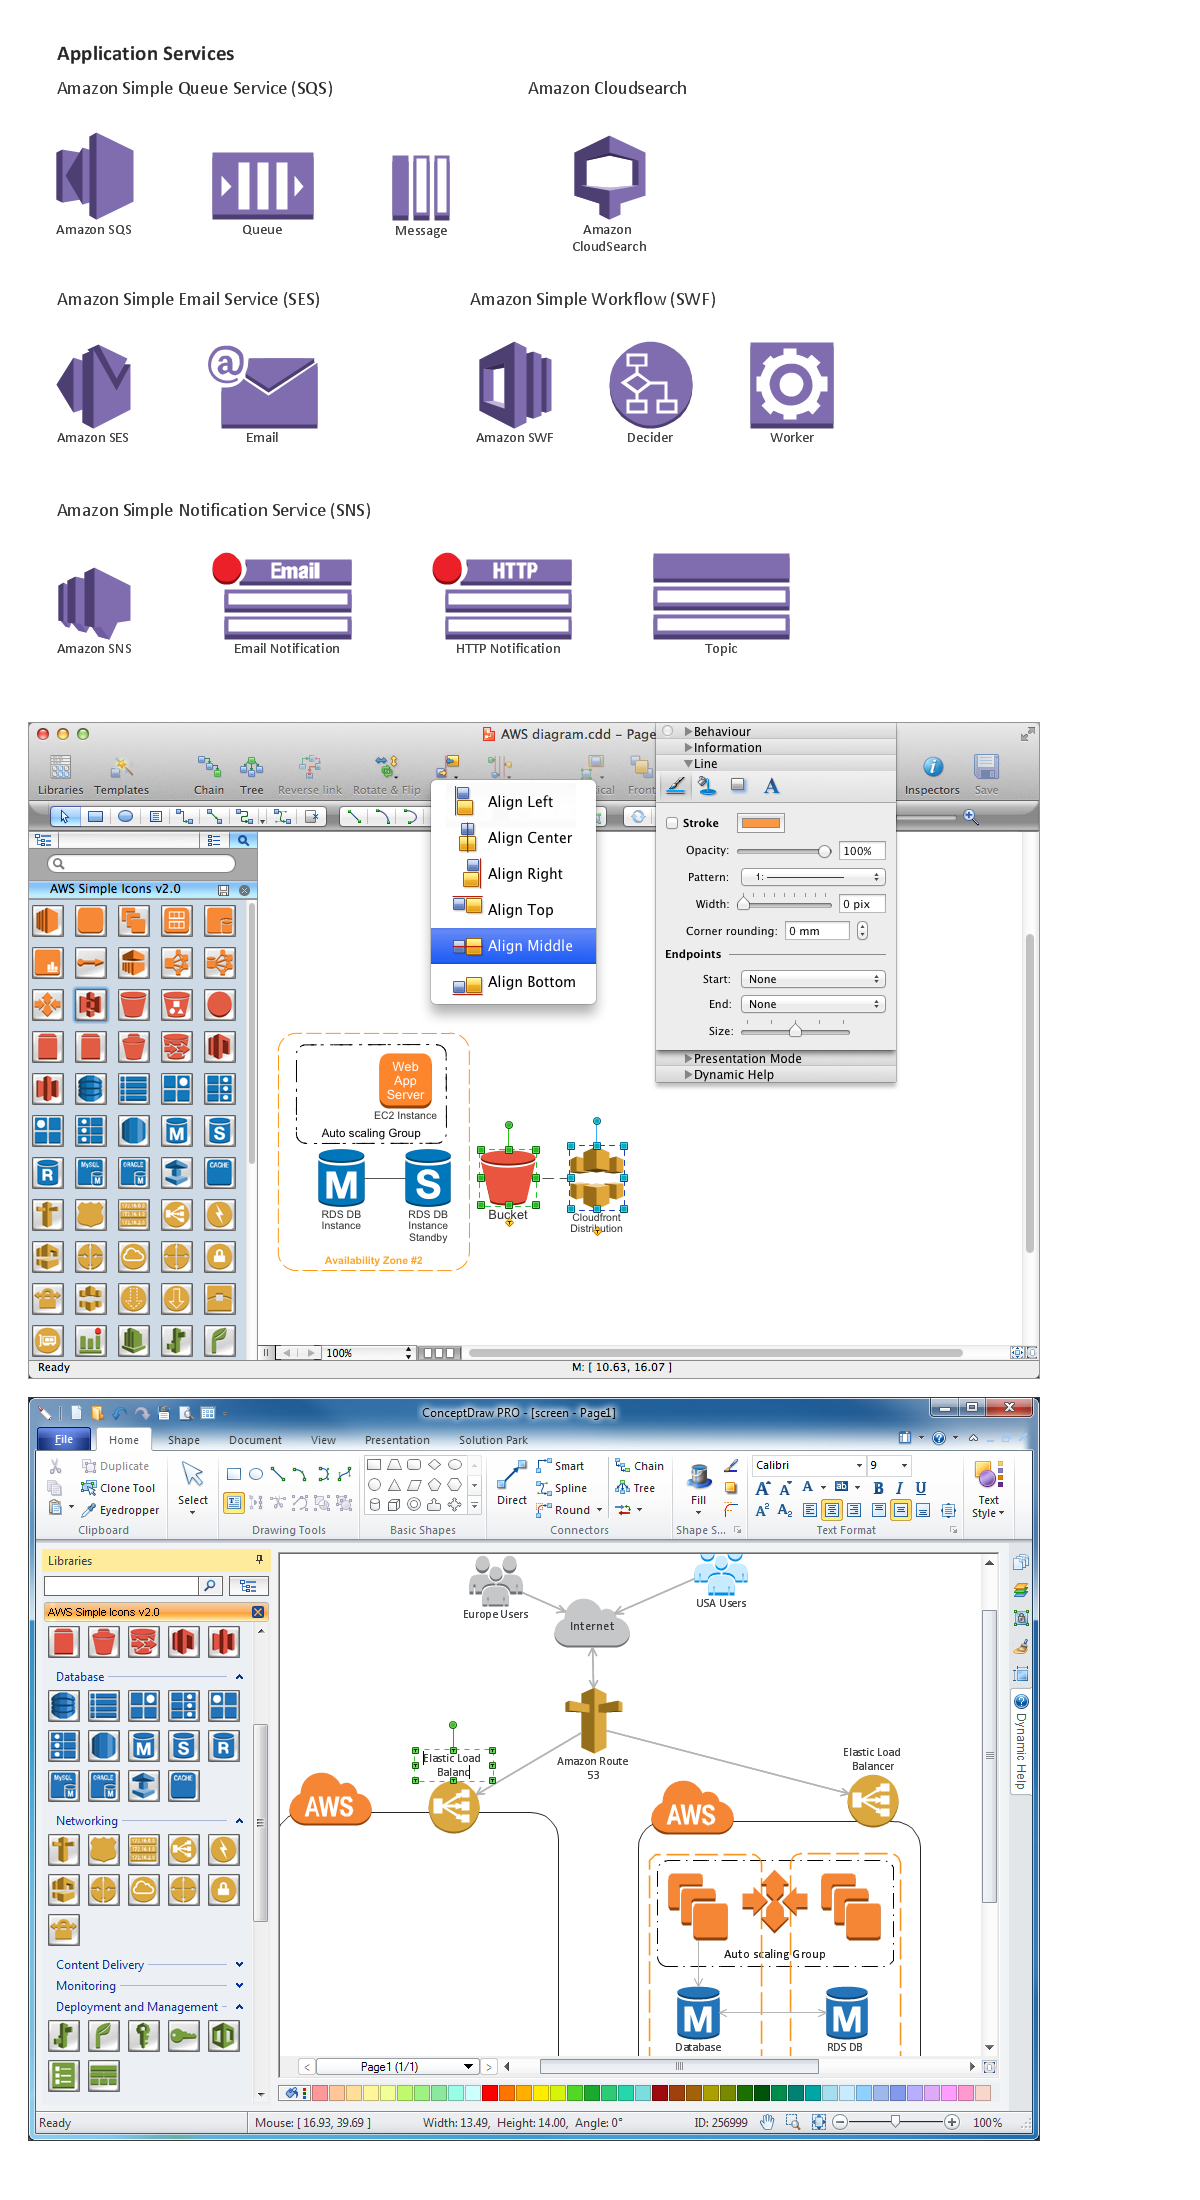 Amazon-Web-Services-AWS-Design-Elements-icons-Application-Services conceptdraw solution park web tool